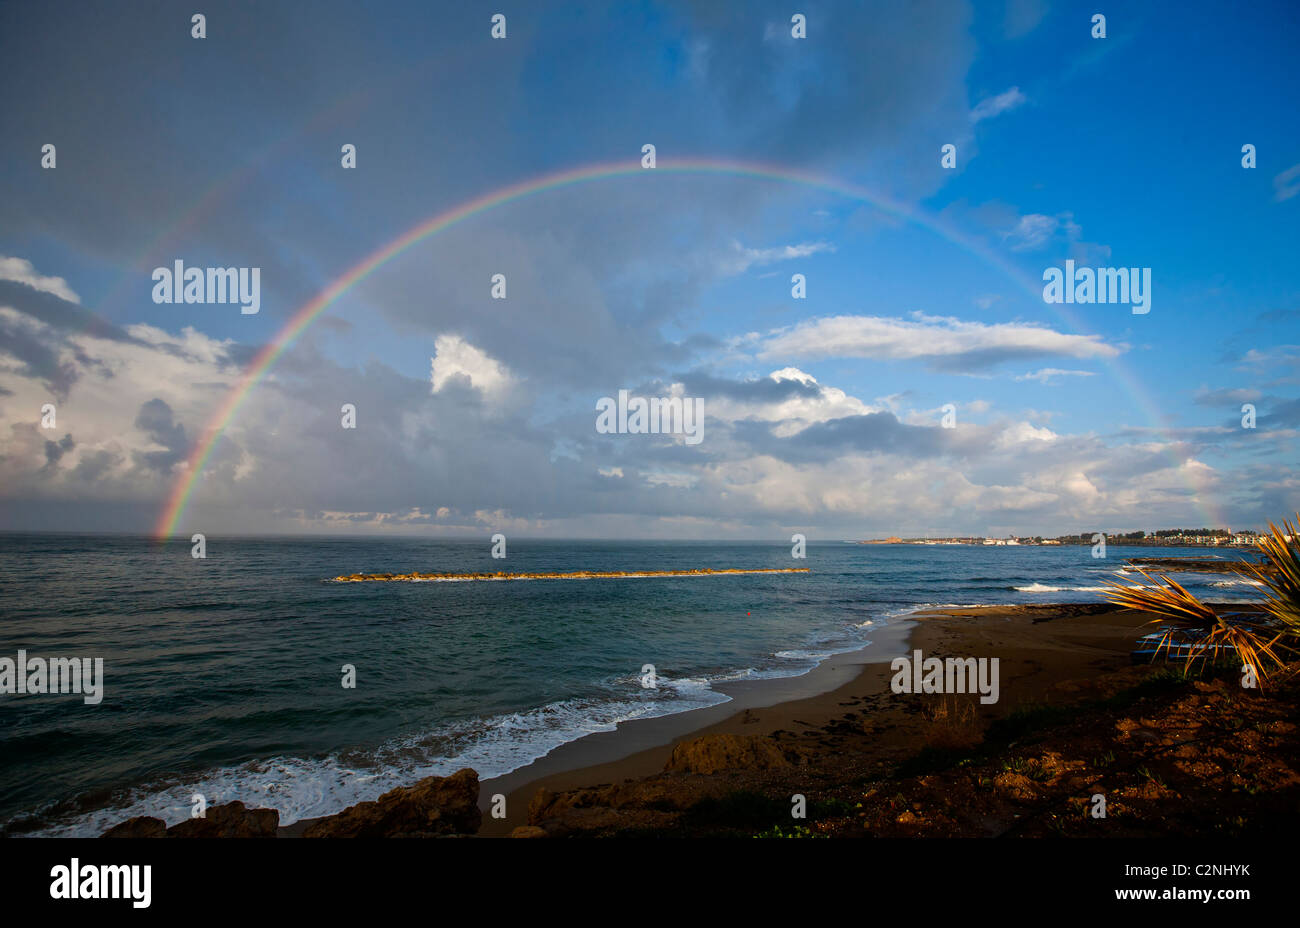 180 degree rainbow over the sea at paphos Cyprus after a heavy storm - Stock Image